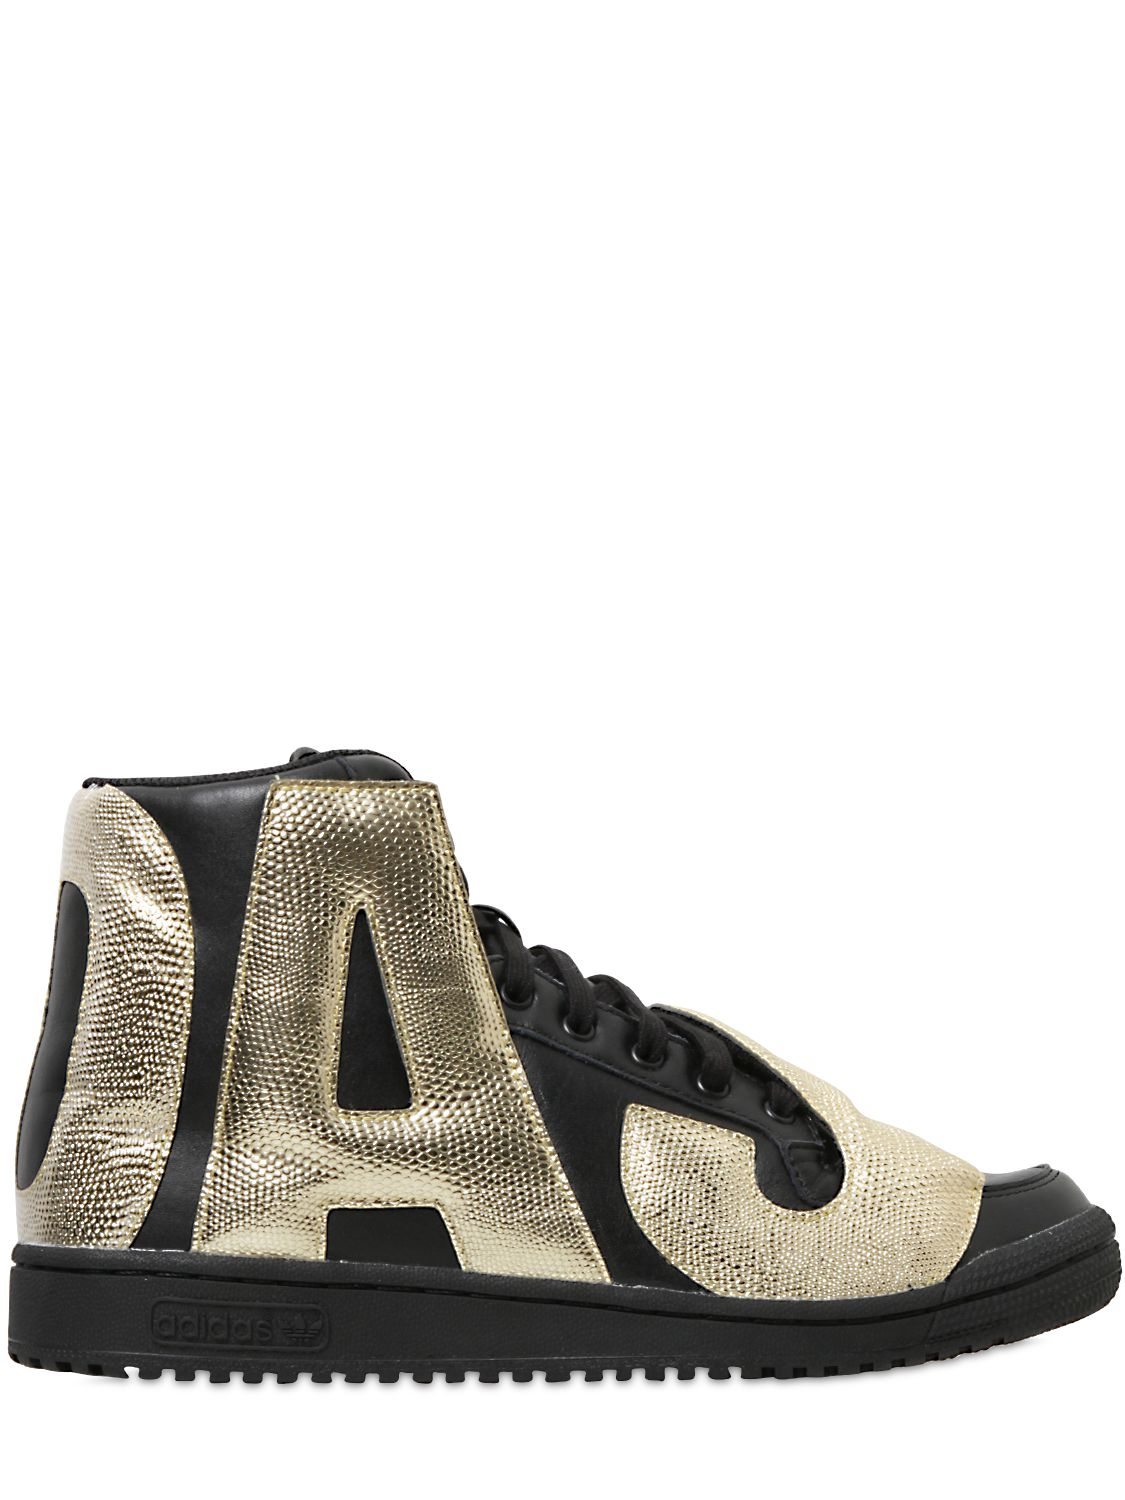 cd5ef3f5450a Lyst - Jeremy Scott for adidas Gold Letters   Leather High Top ...